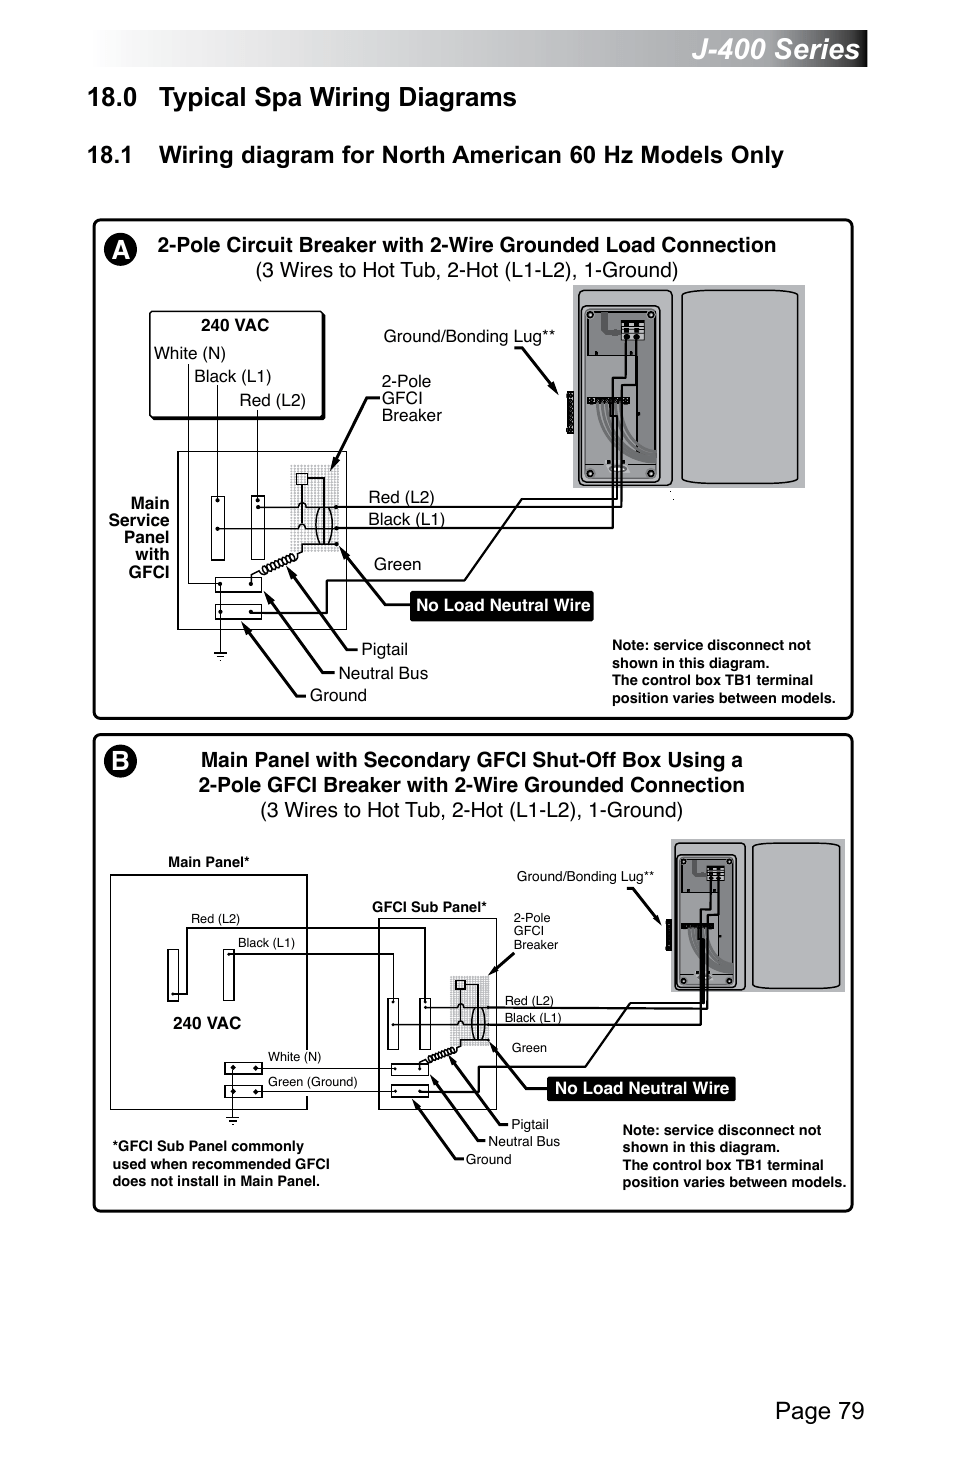 hight resolution of wrg 8908 2wire gfci wiring diagram0 typical spa wiring diagrams j 400 series